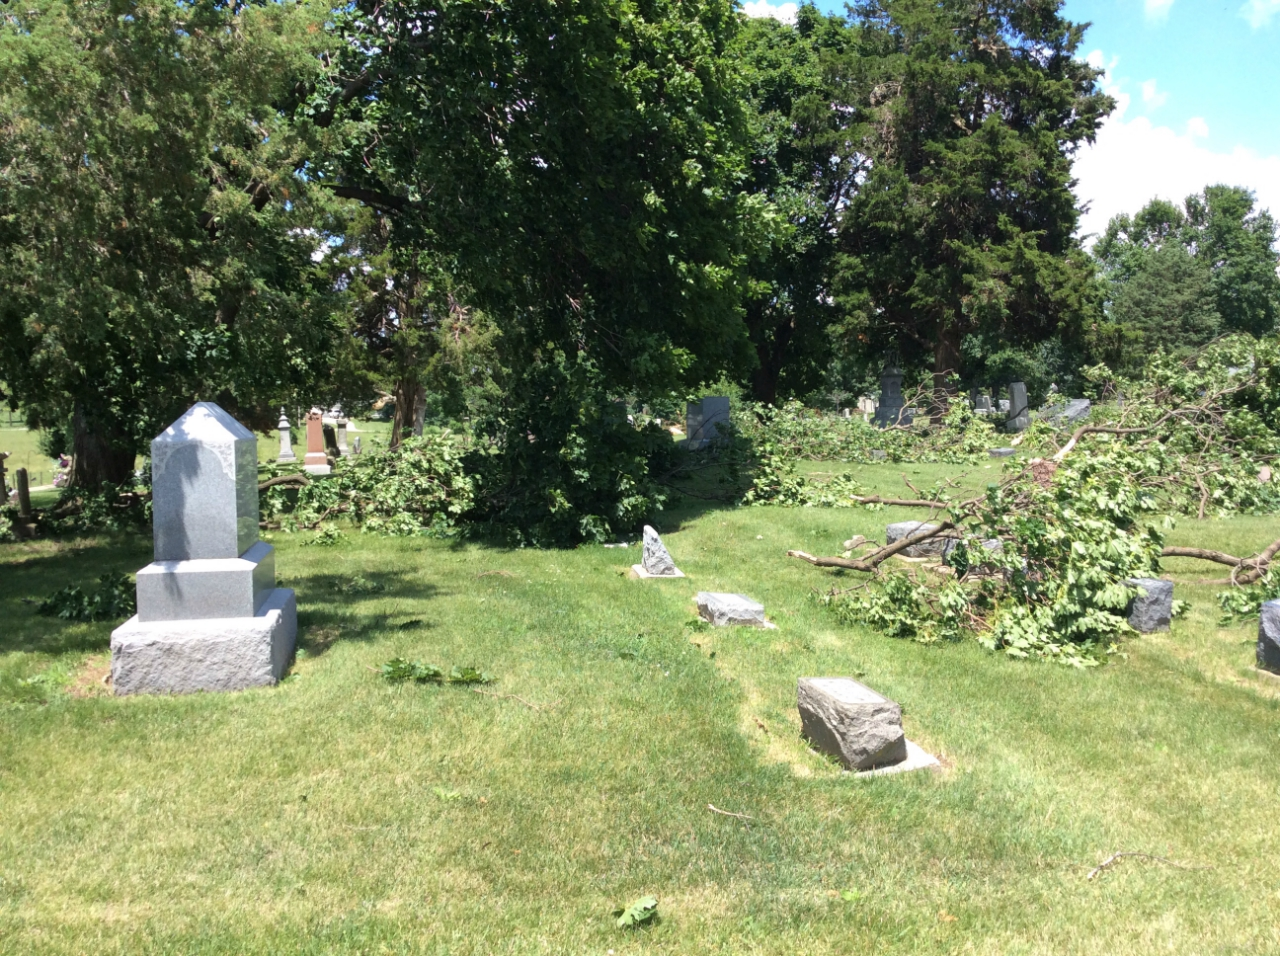 Trees down in cemetary just south of Troy Grove